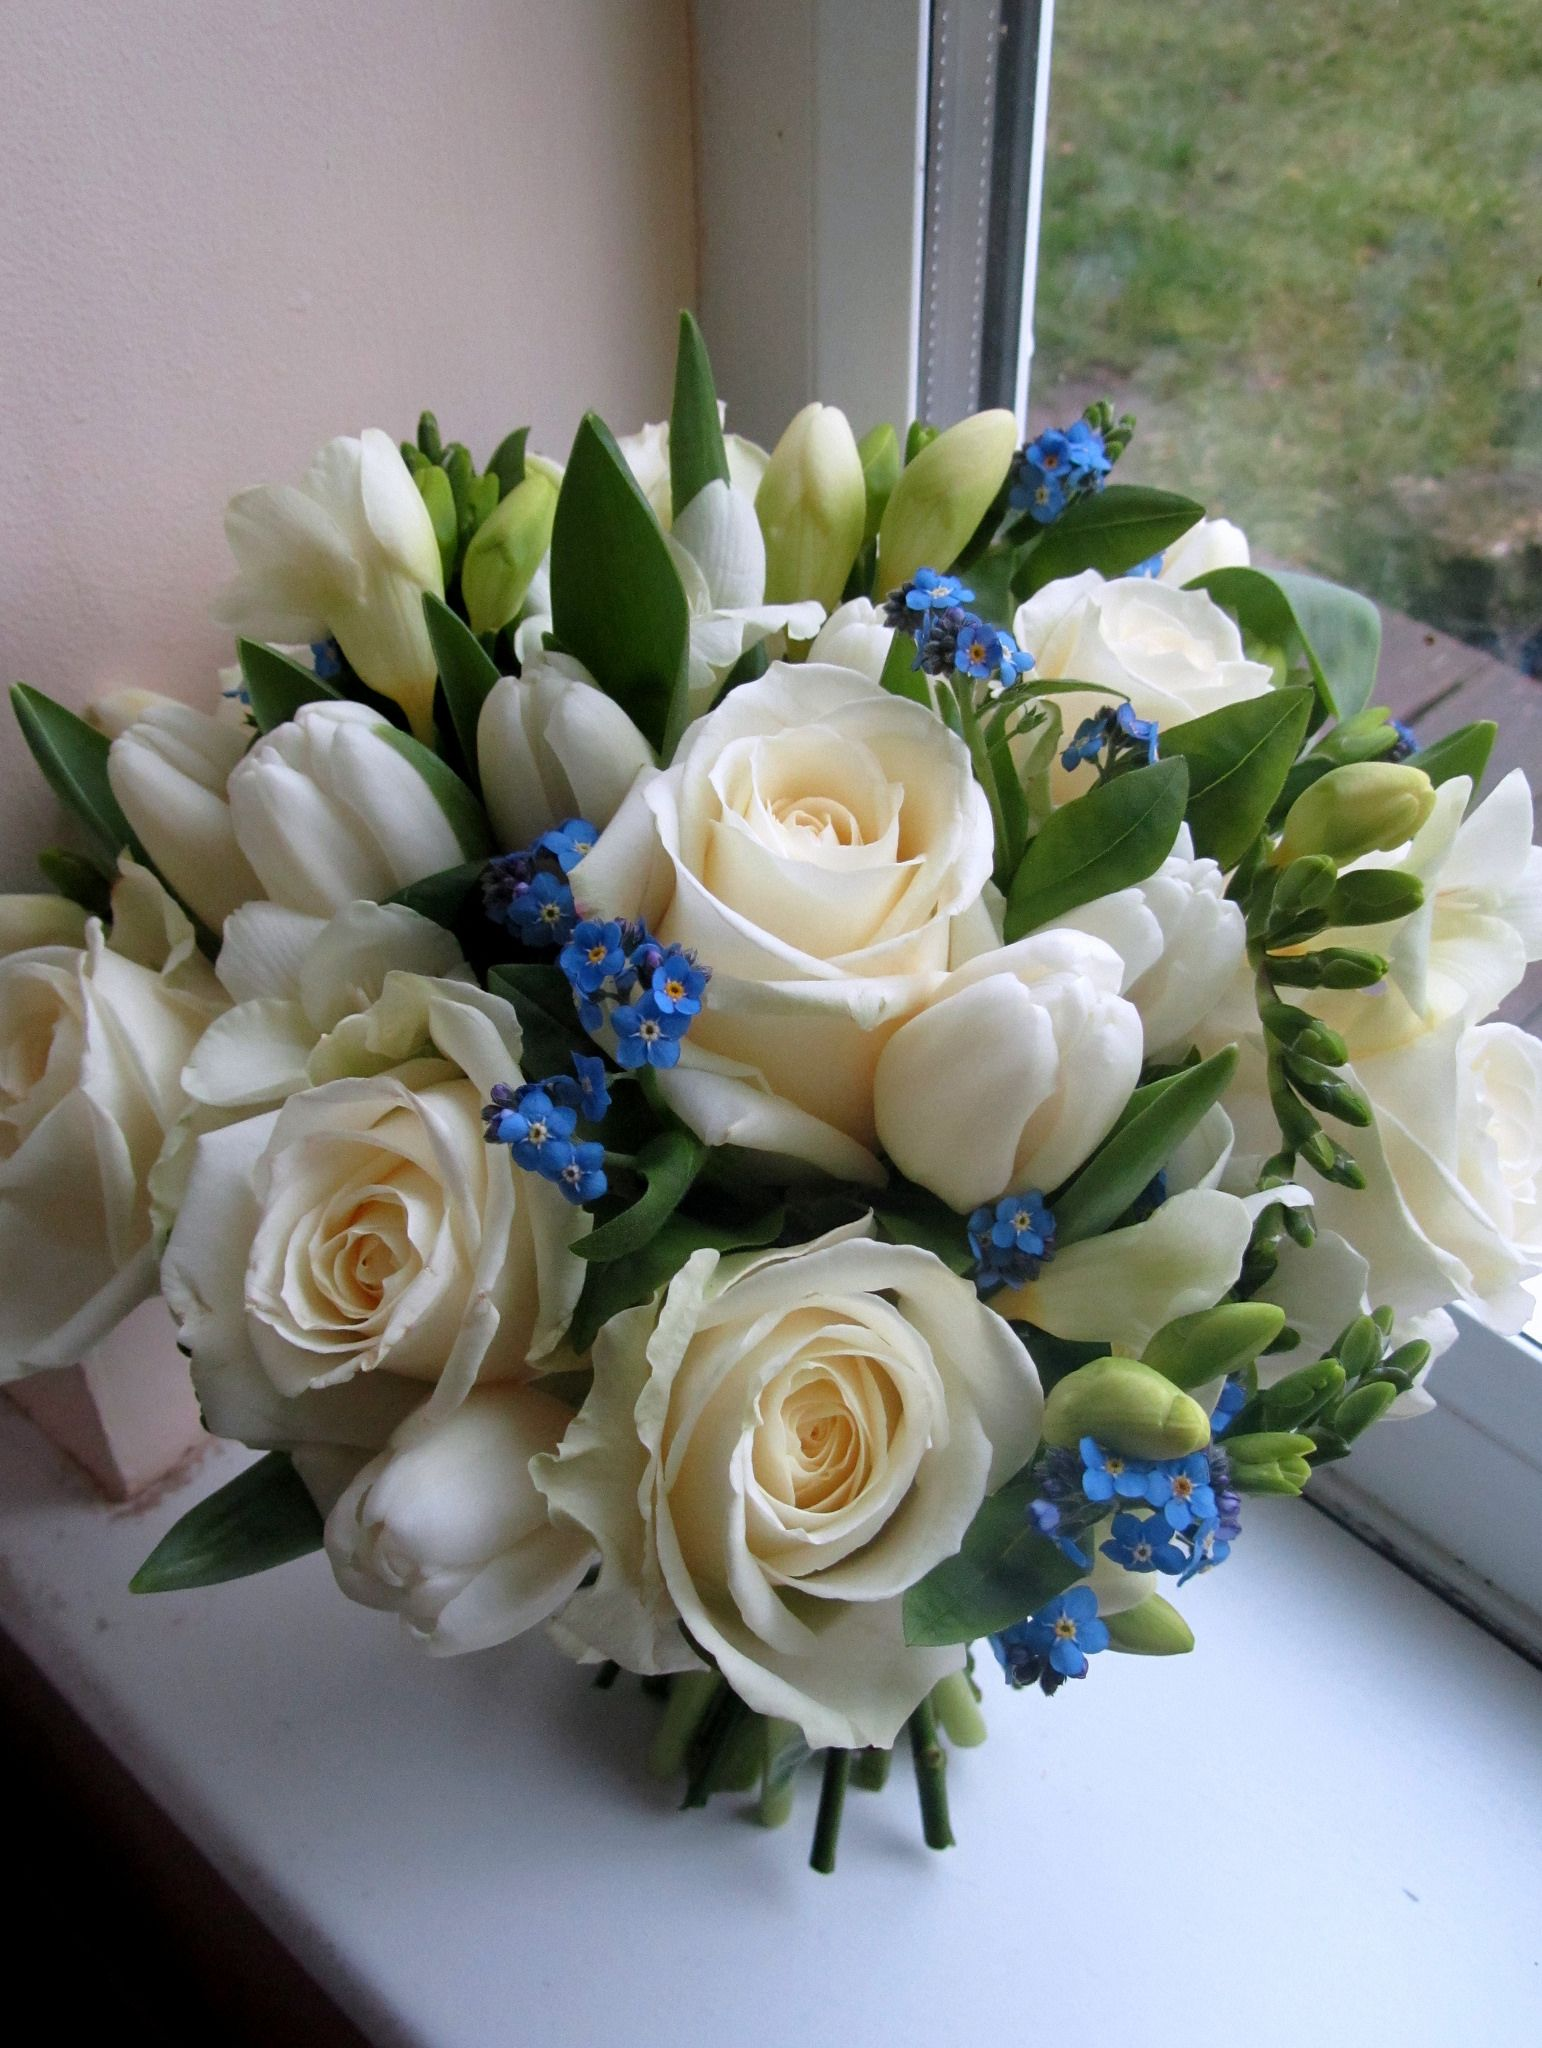 Blue and white bouquet white bouquets white roses and florists httpsflicprohvph blue and white bouquet bouquet of white roses tulips and forget me nots by the flowersmiths wedding florist in kent izmirmasajfo